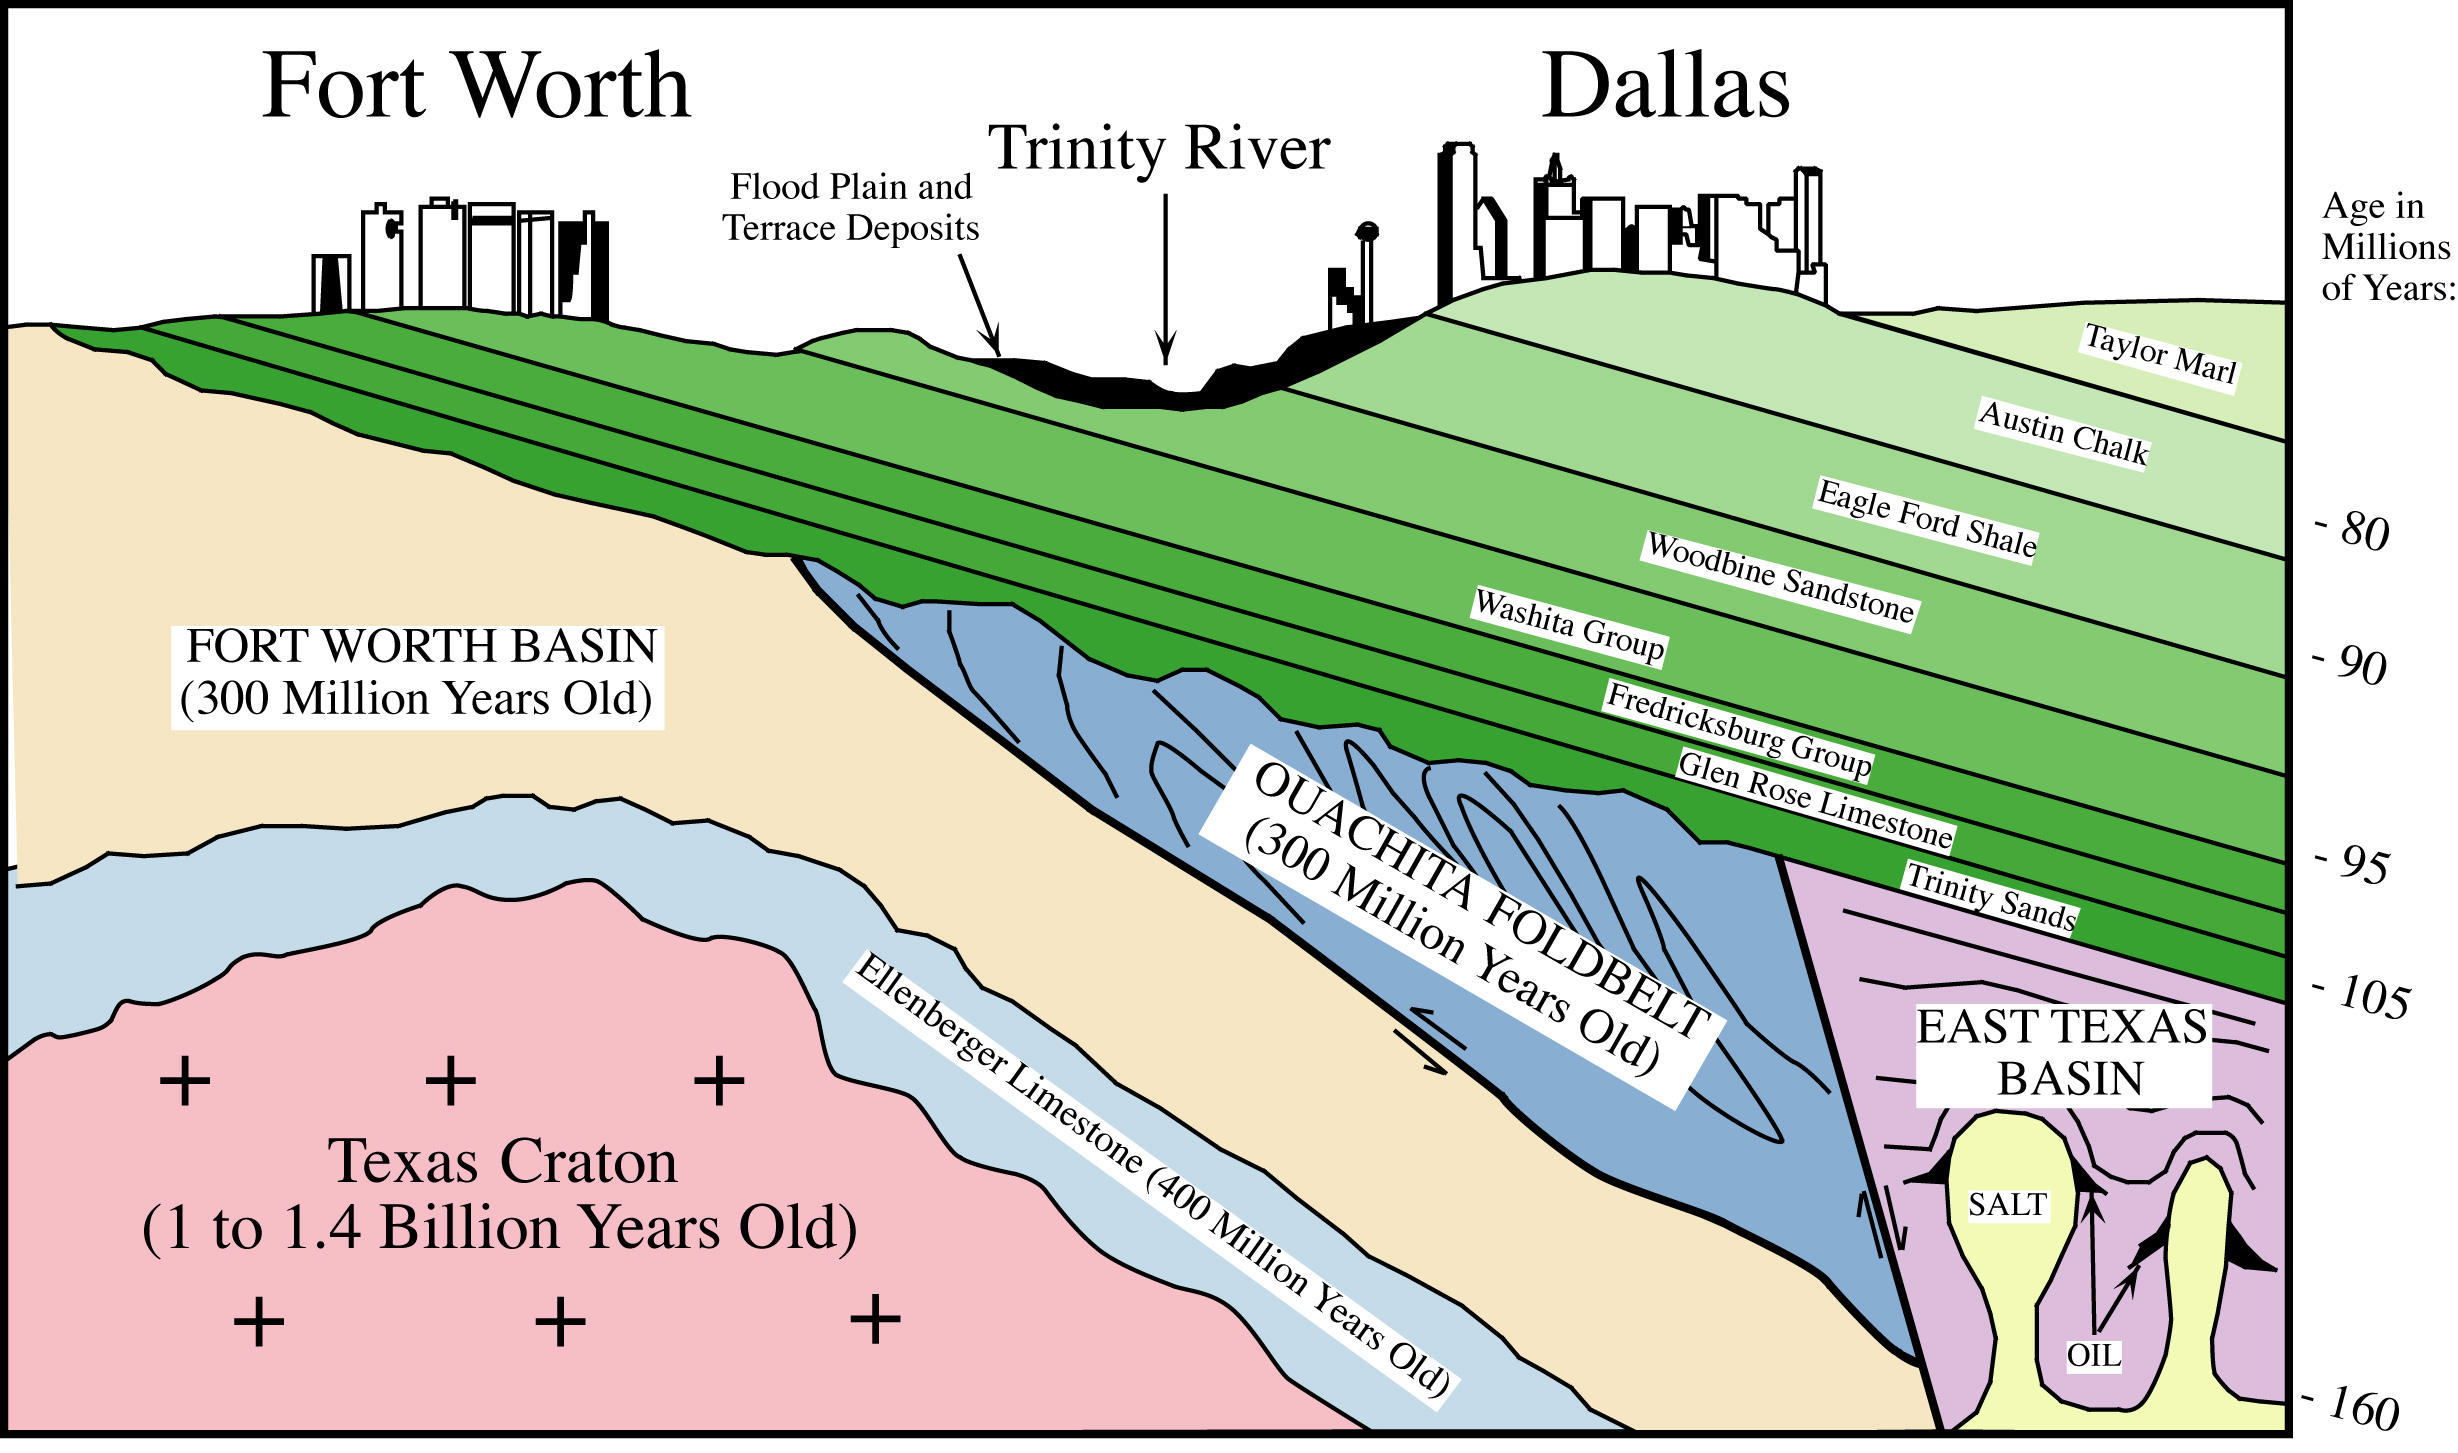 geology of the dallas–fort worth metroplex  wikipedia - schematic ew section showing the geology beneath the dfw metroplex